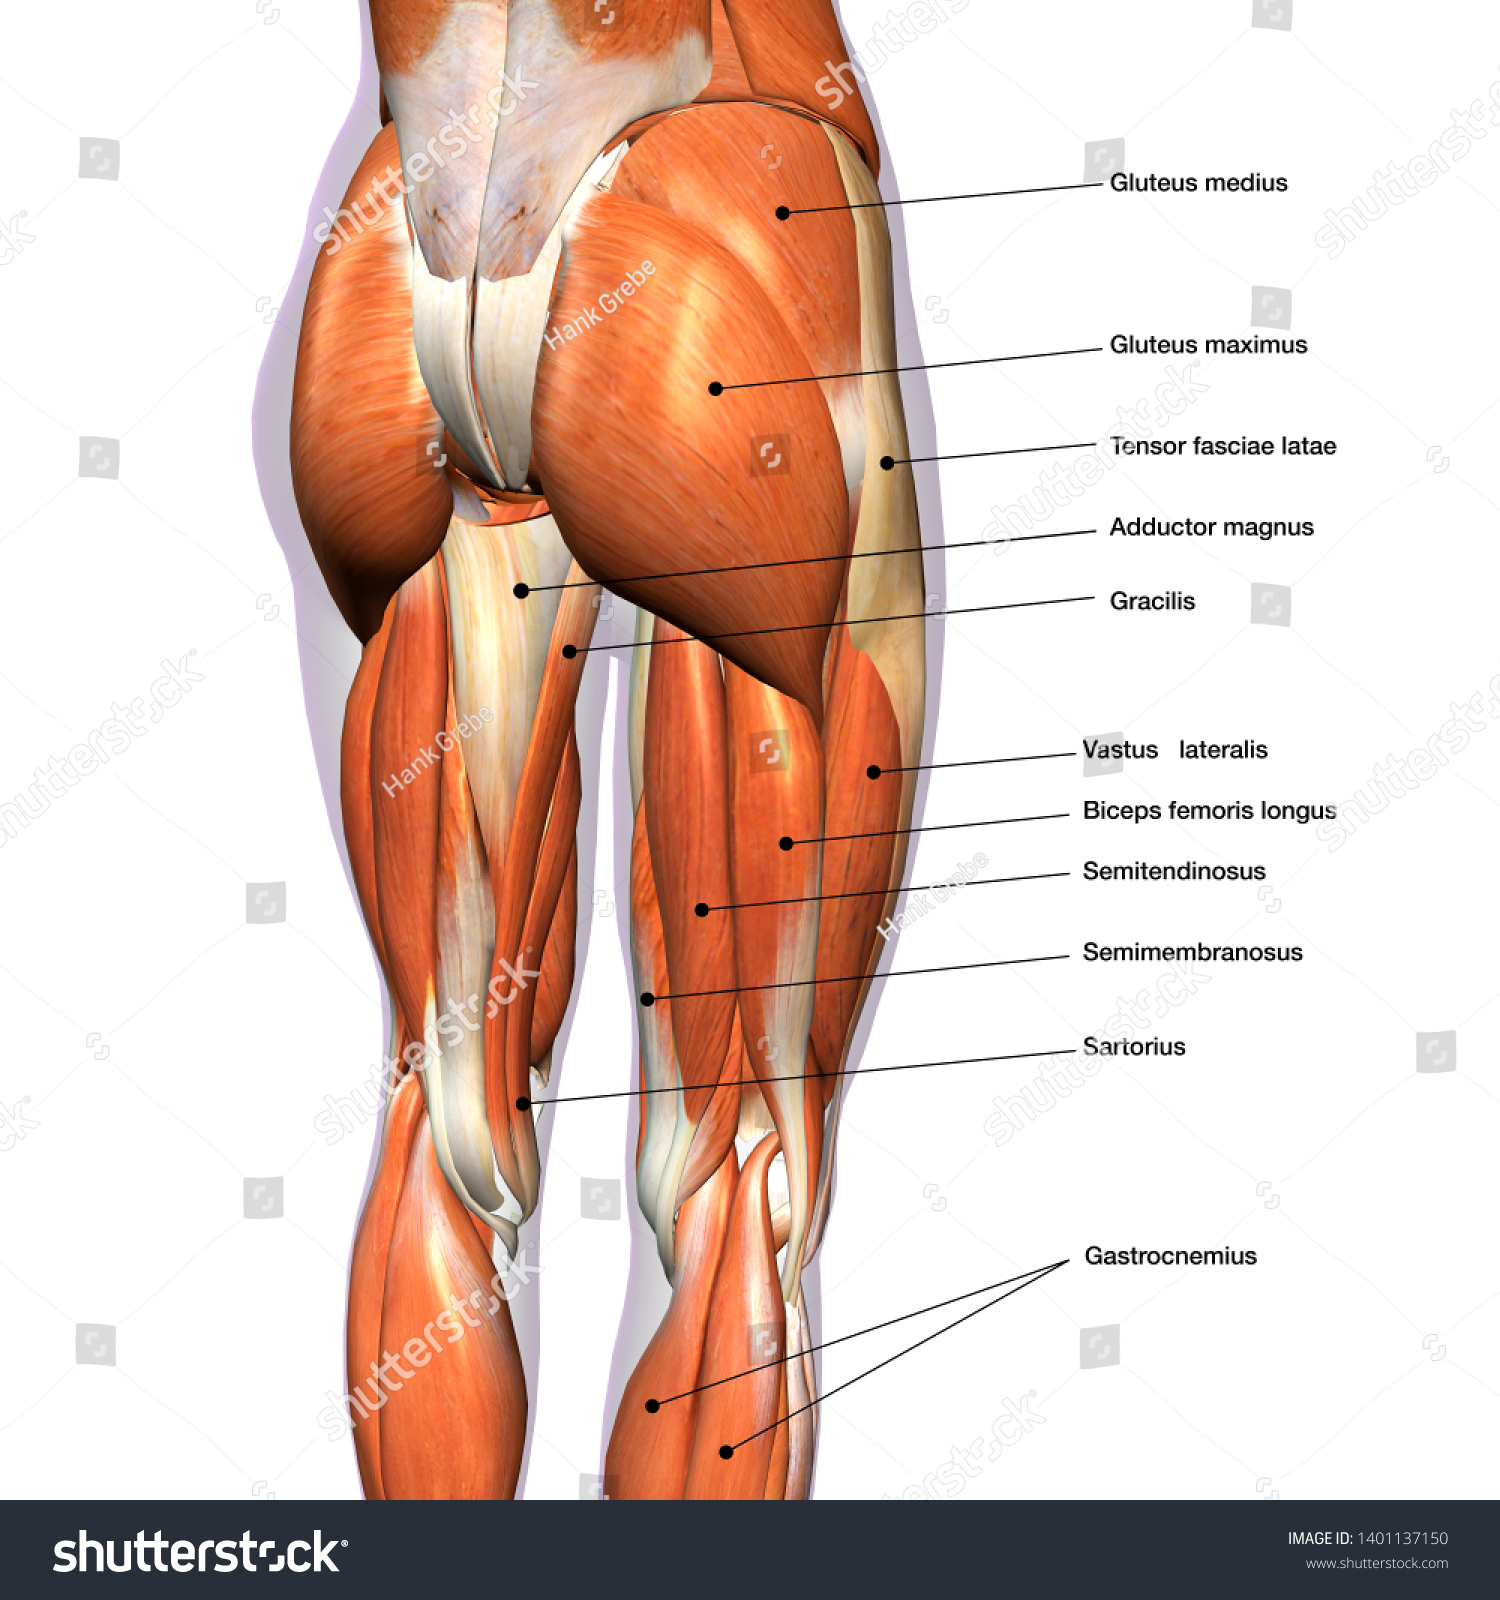 Hip Leg Muscles Labeled Posterior Stock Illustration ... Leg Muscles Diagram on arm diagram, sartorius diagram, leg muscles group, leg muscle chart, anterior compartment of leg, foot muscle diagram, leg cramps, inner ear diagram, achilles tendon, hip diagram, leg parts, leg tendons, leg muscle model, calf muscle diagram, cardiovascular system diagram, leg ligaments, leg workout, iliotibial tract, popliteal fossa, leg bones, upper thigh muscle diagram, calf muscle, leg muscles labeled, foot nerves diagram, leg nerves,